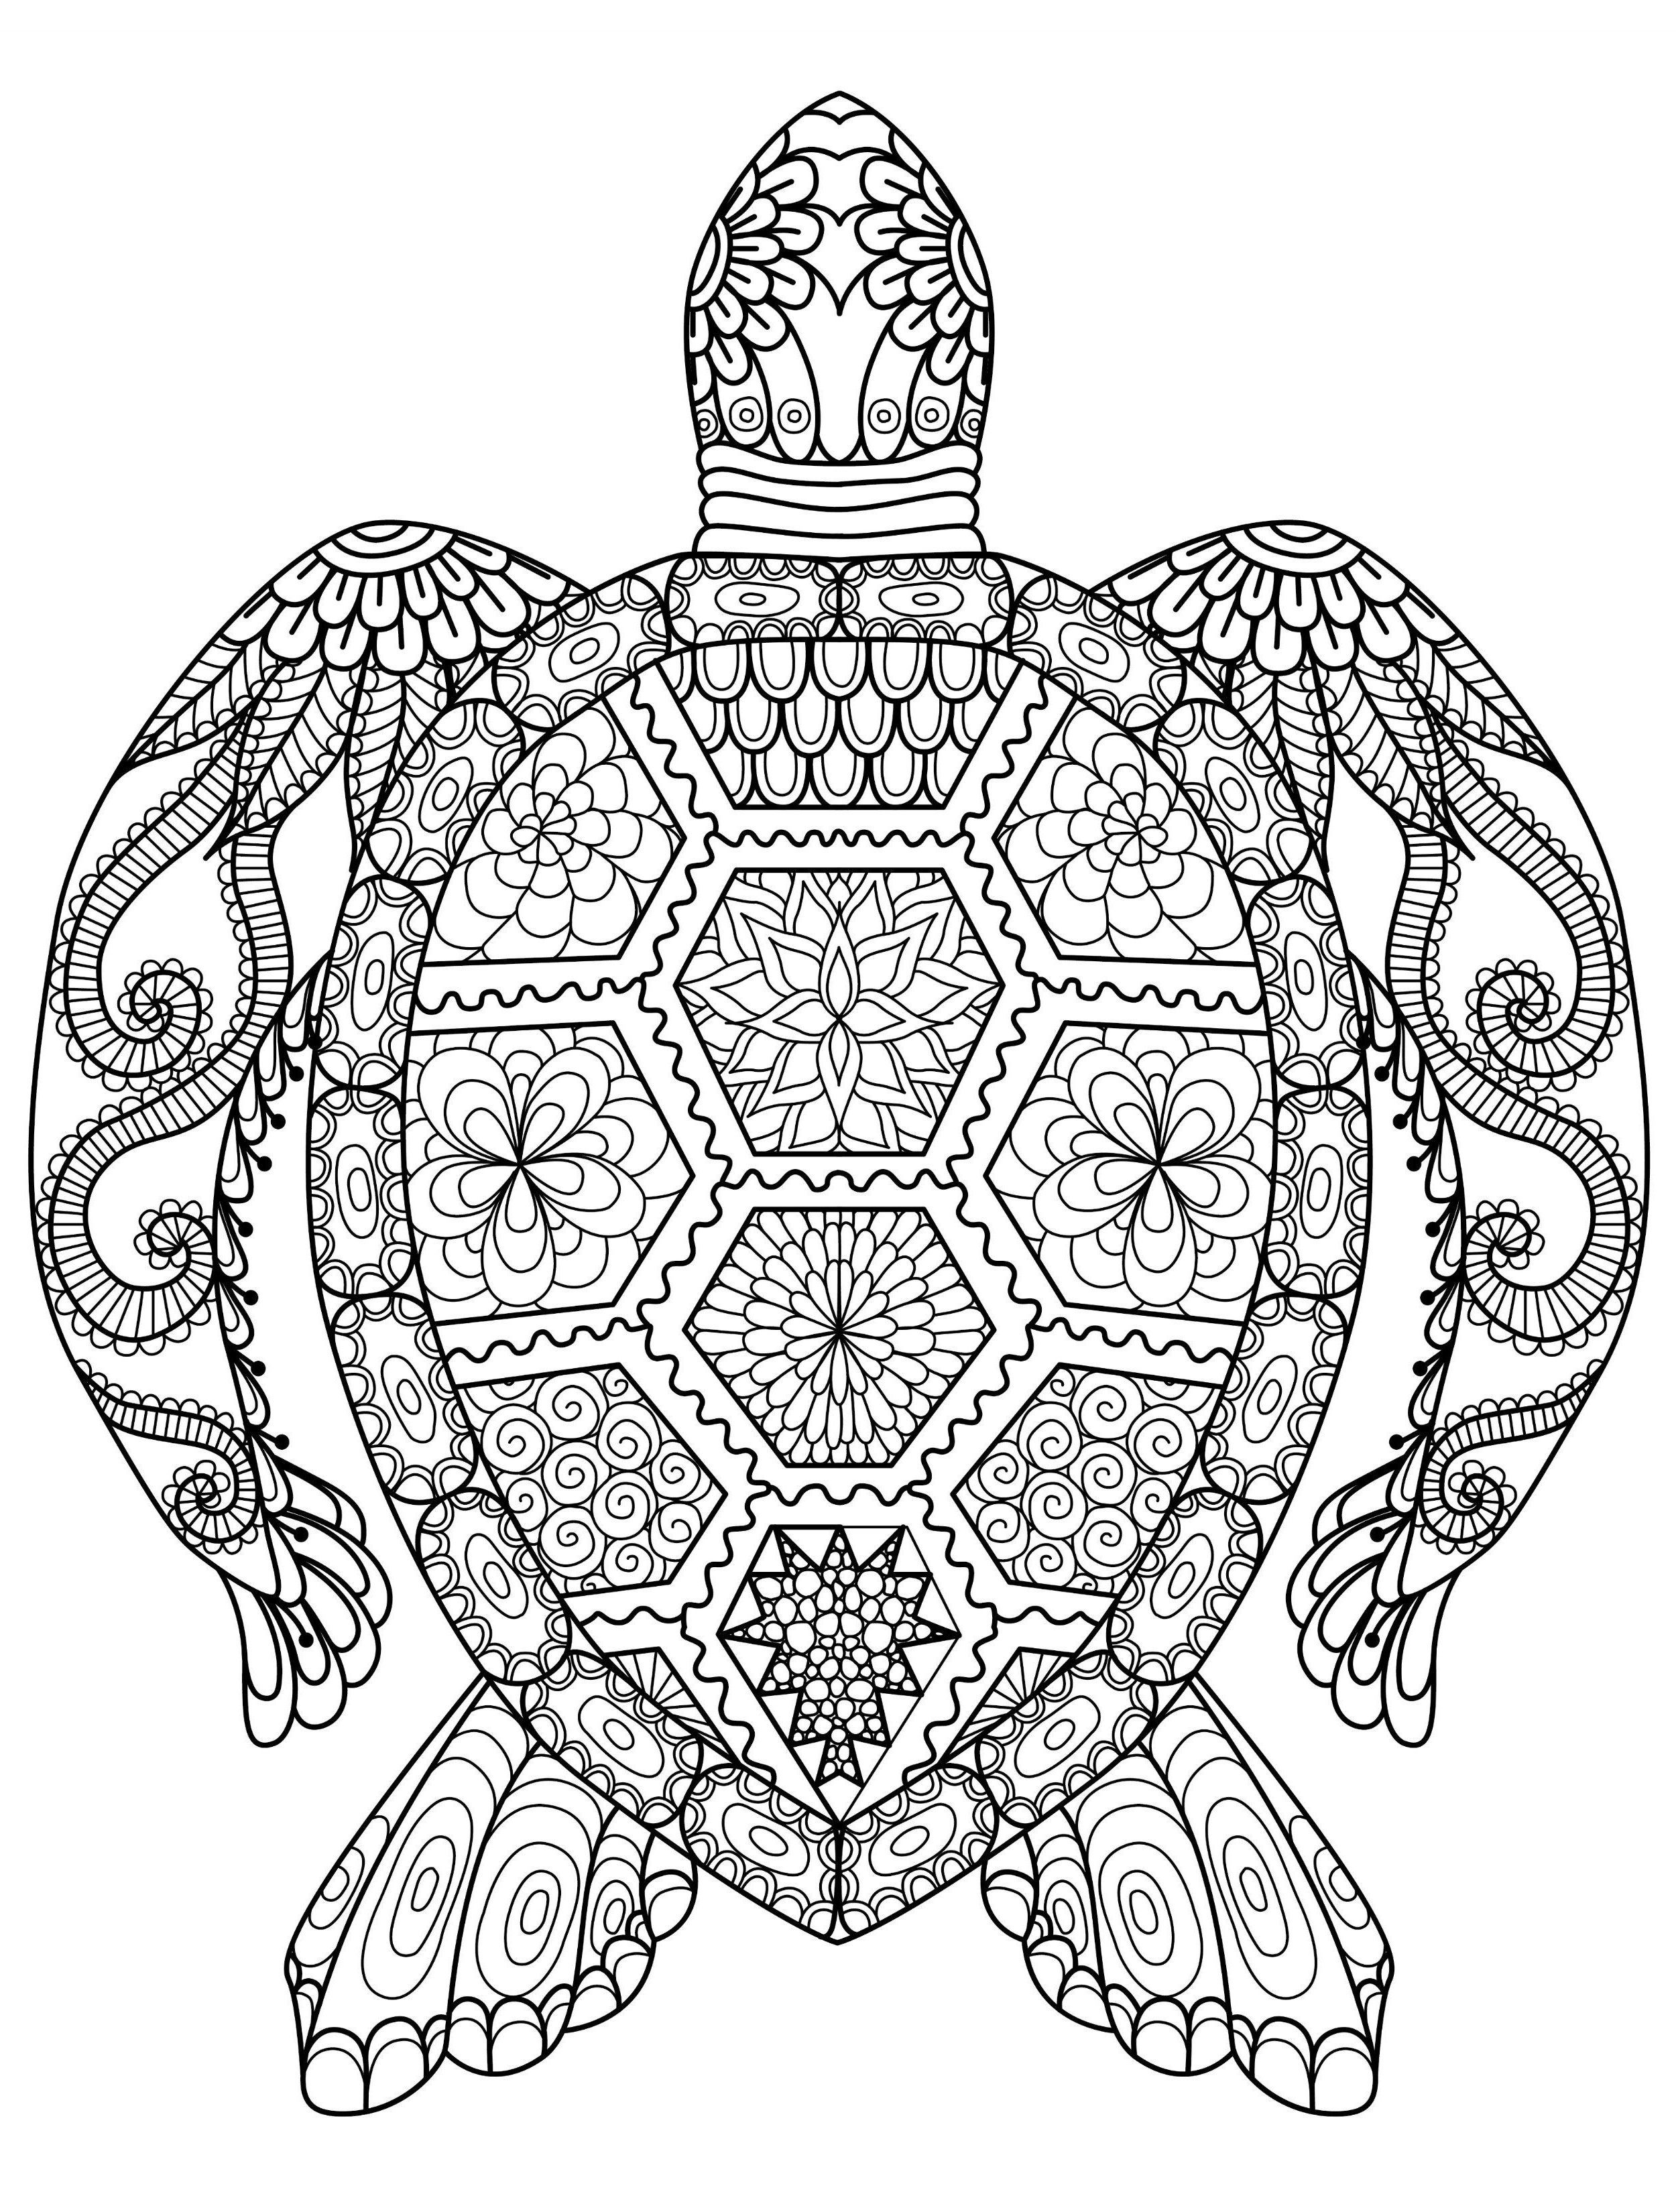 Cute Sea Turtle Mother And Baby Sea Turtles Swimming Together Underwater Coloring Page Turtle Coloring Pages Animal Coloring Pages Baby Coloring Pages